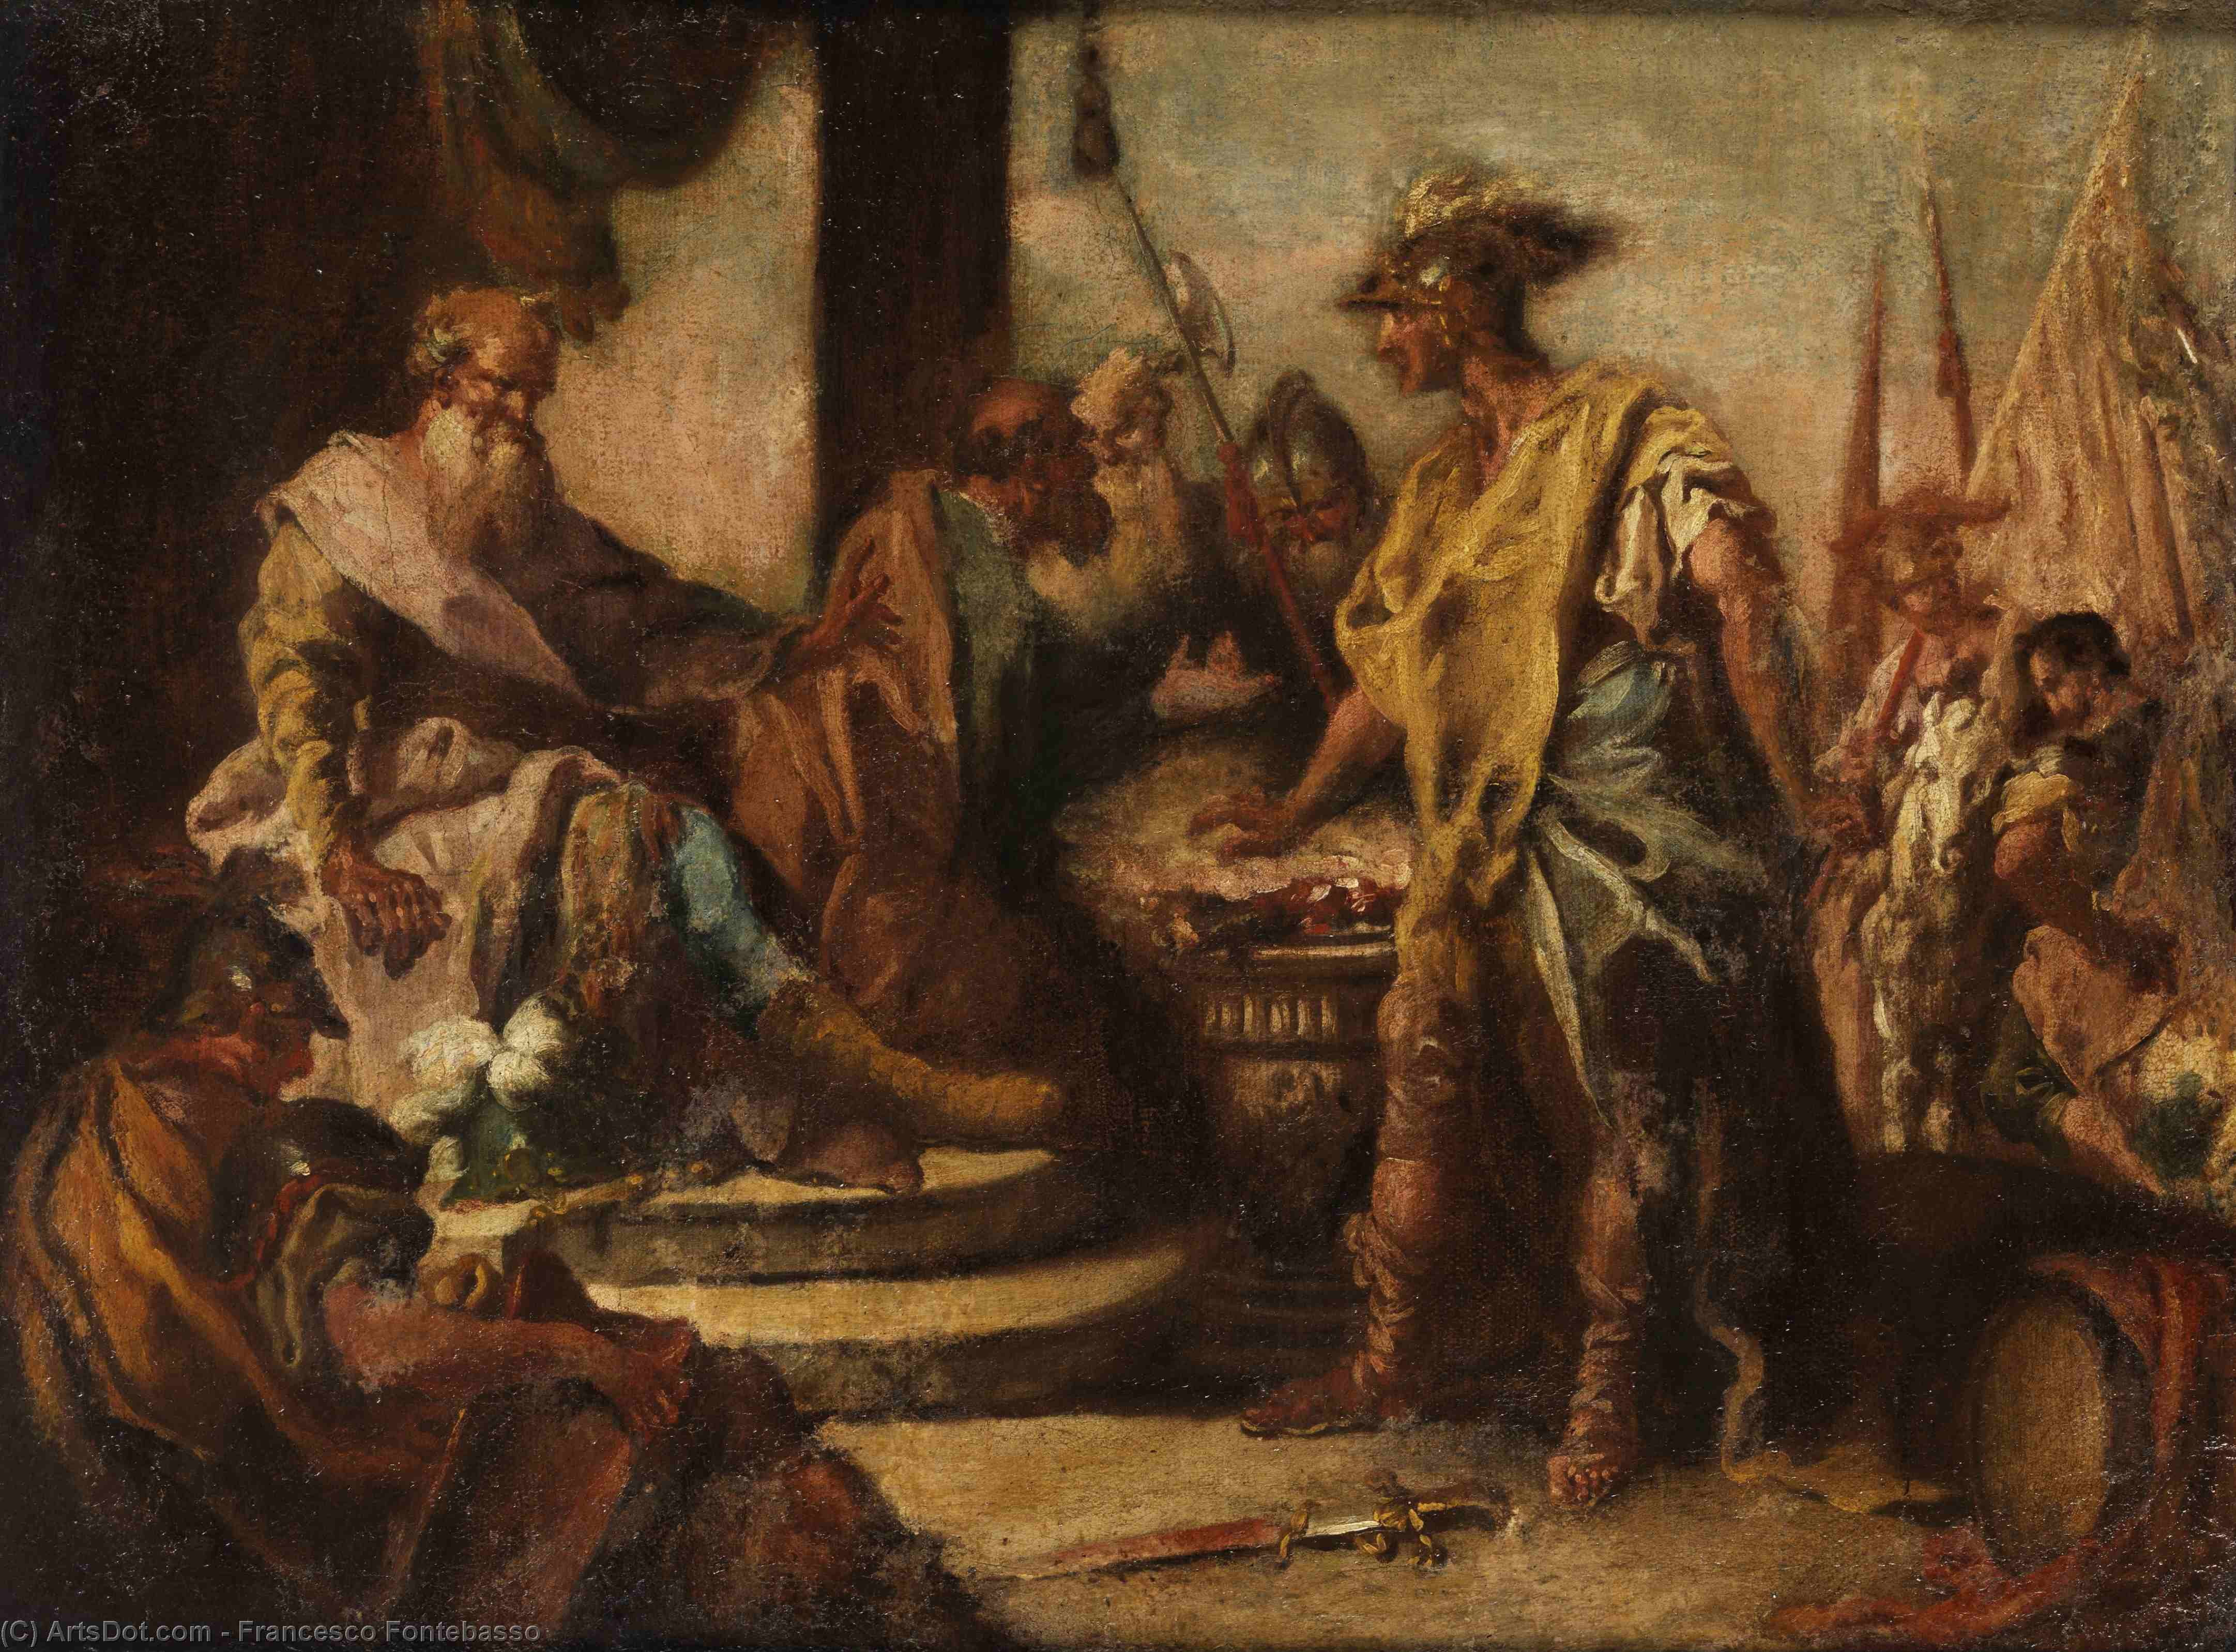 Mucius Scaevola puts his hand into the fire in front of the Etruscan prince Porsenna. by Francesco Fontebasso (1707-1769, Italy)